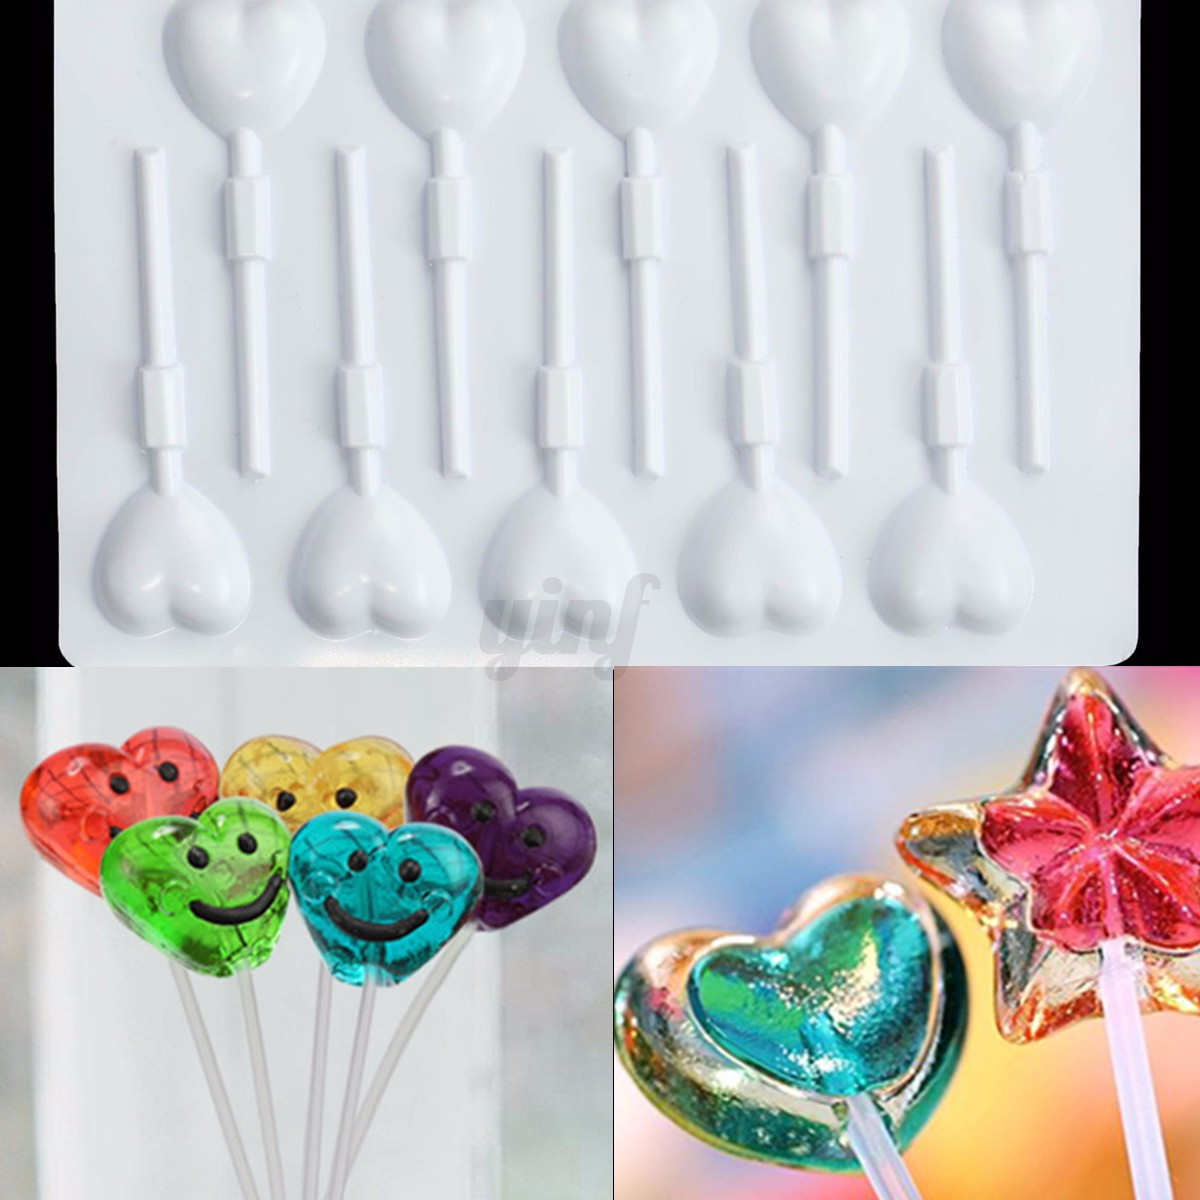 Lollipop Fondant Mould Chocolate Cake Cookie Candy Soap Mold Xmas Decorating DIY